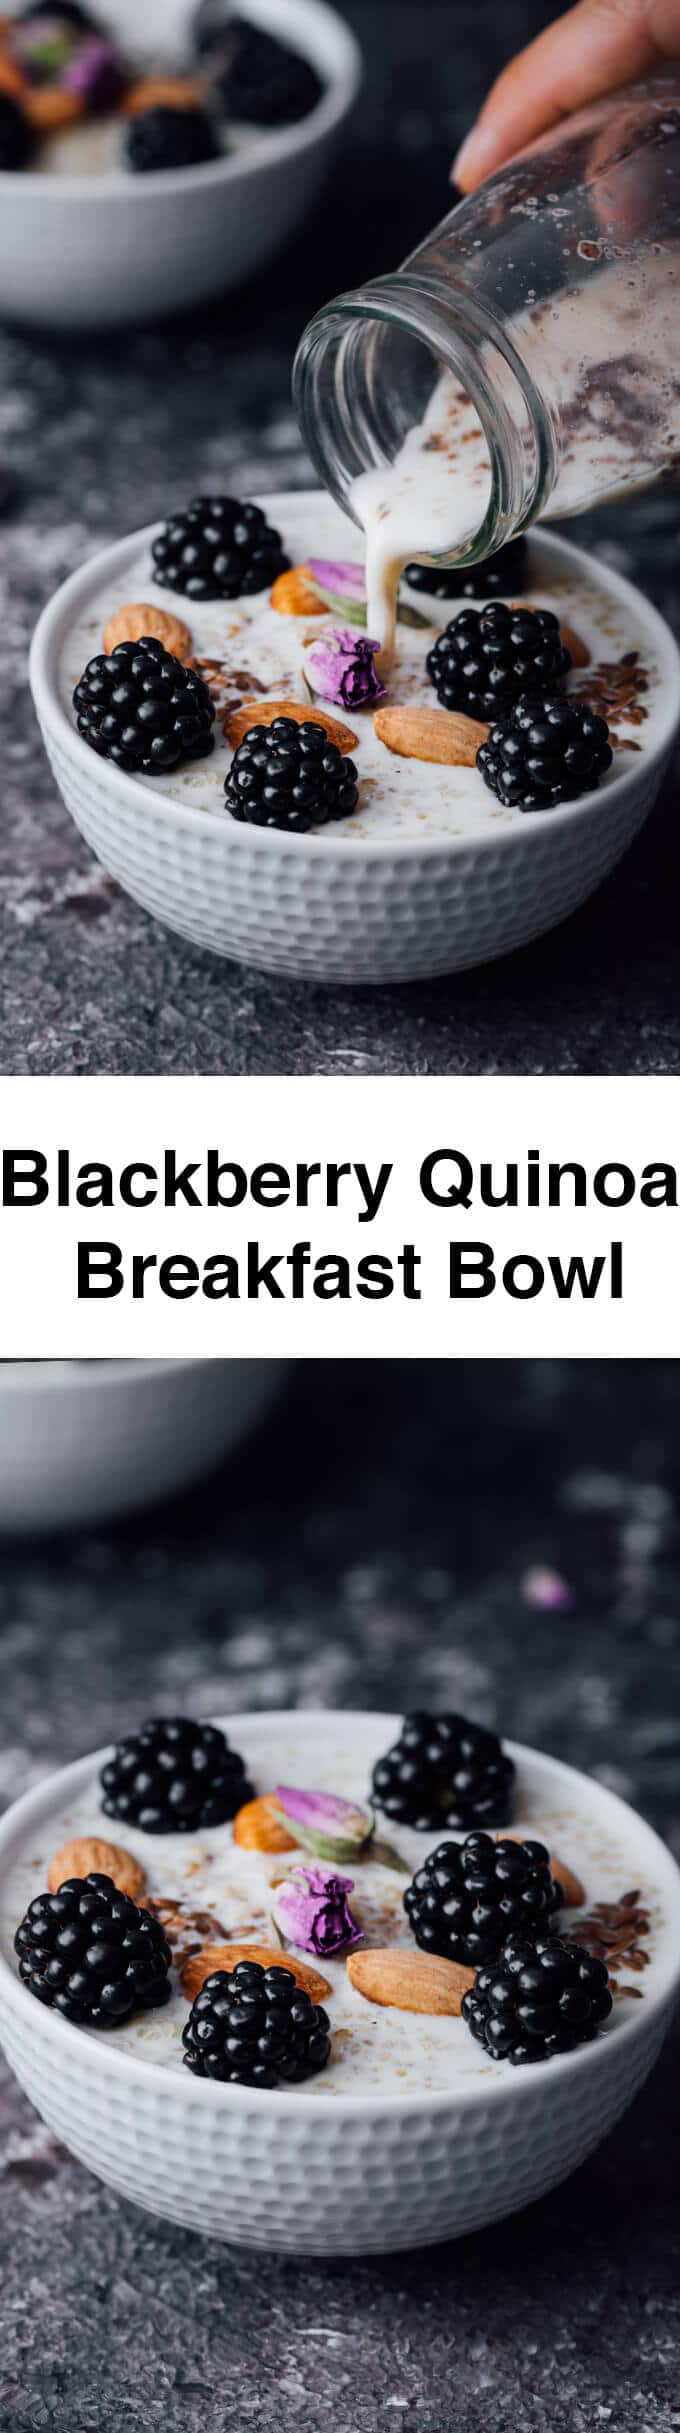 Blackberry Quinoa Breakfast Bowl gives a magical touch to your body with its super ingredients and makes your body ready for the day. Vegan and gluten-free.